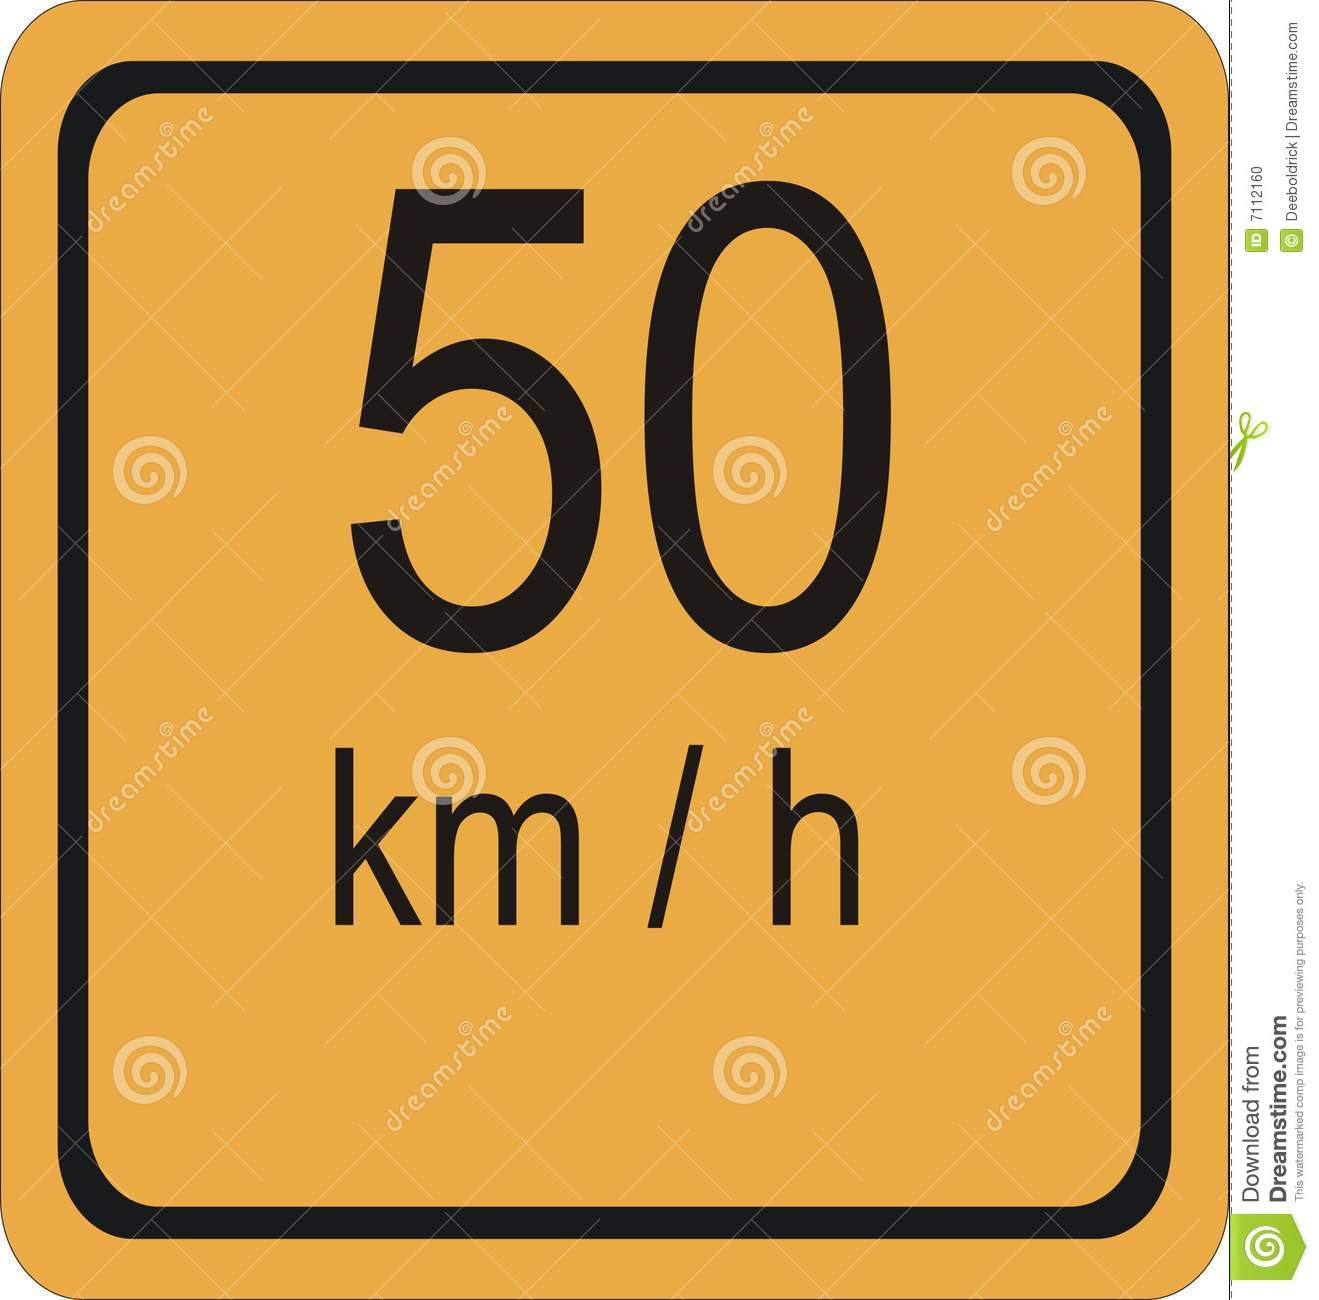 Kilometer Post Stock Photos, Images, & Pictures.